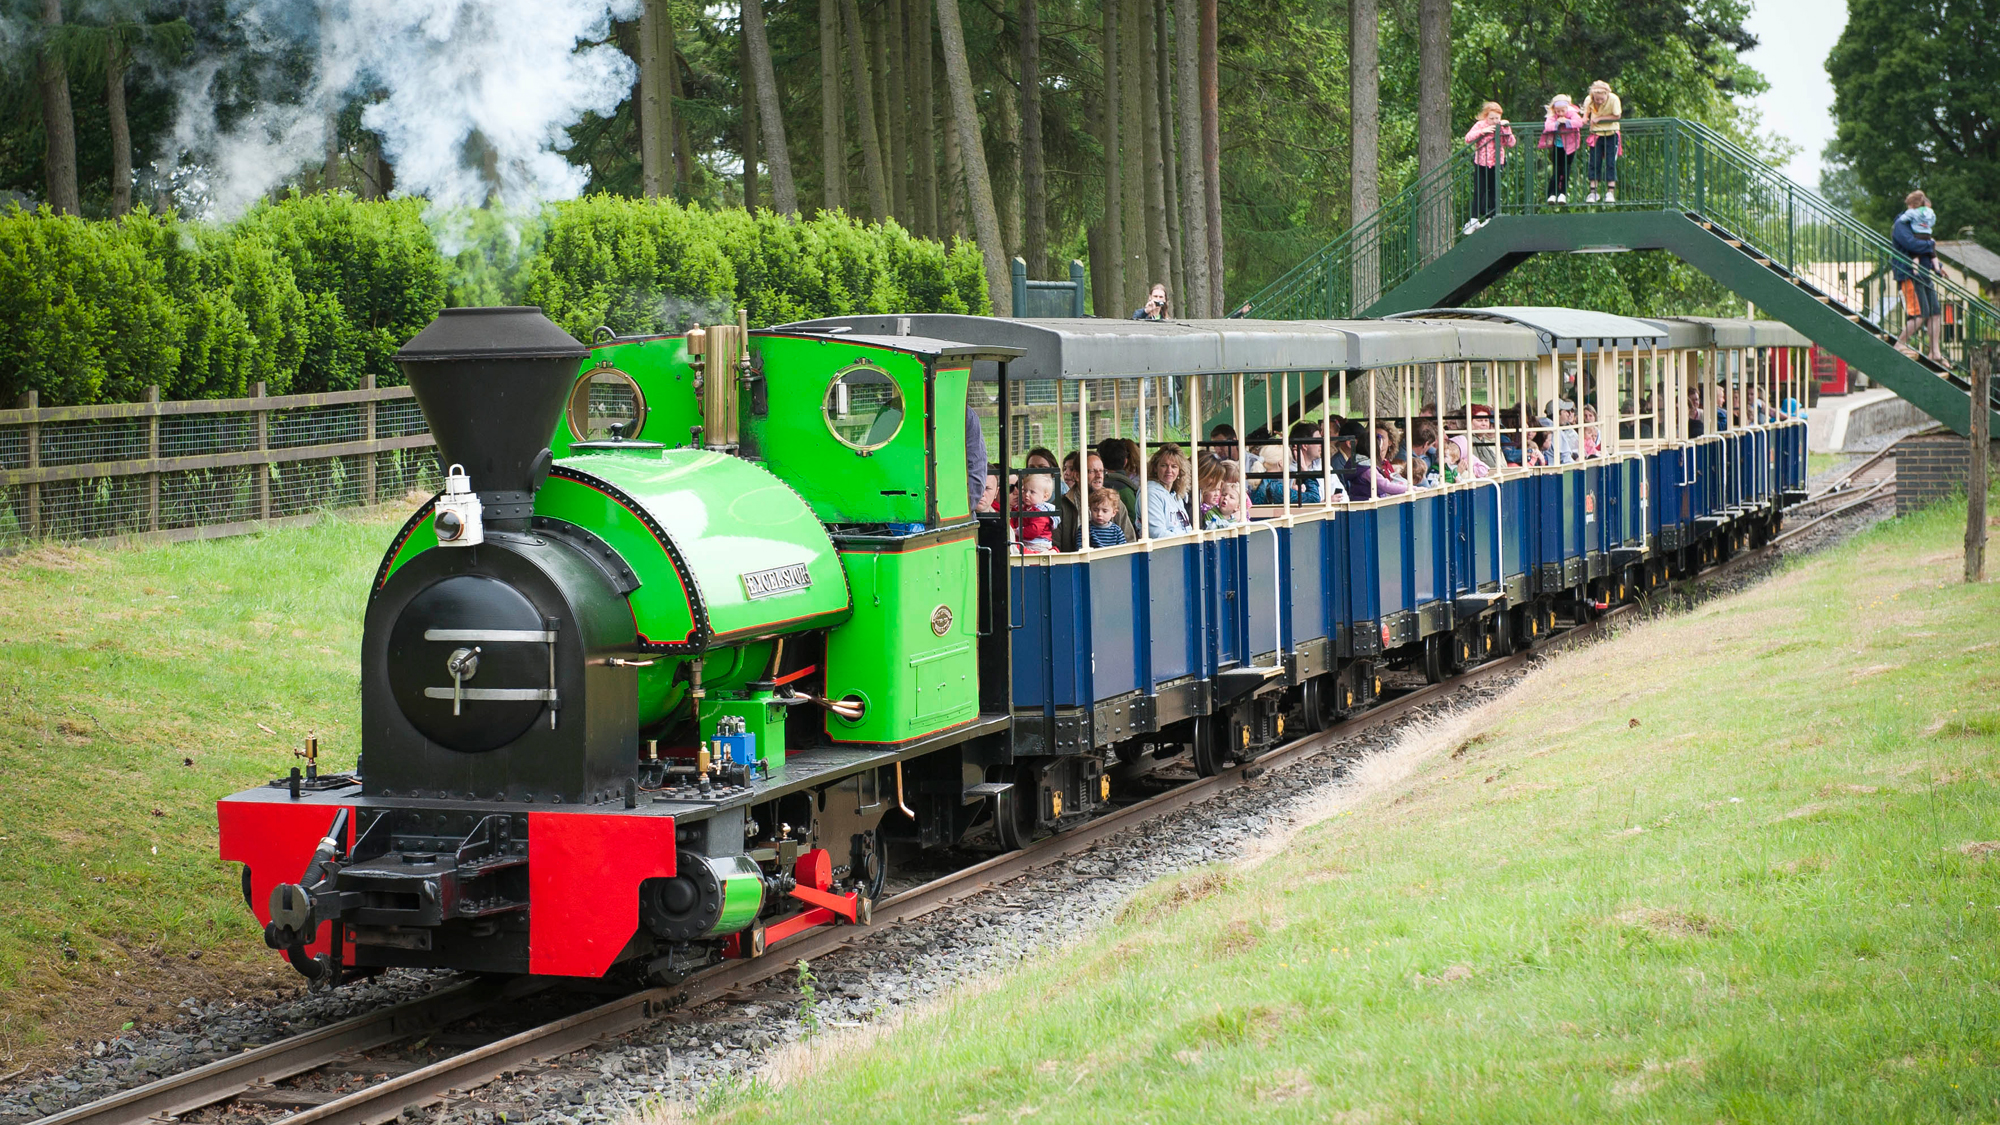 ZSL Whipsnade Zoo Filming Locations - Steam Train ...